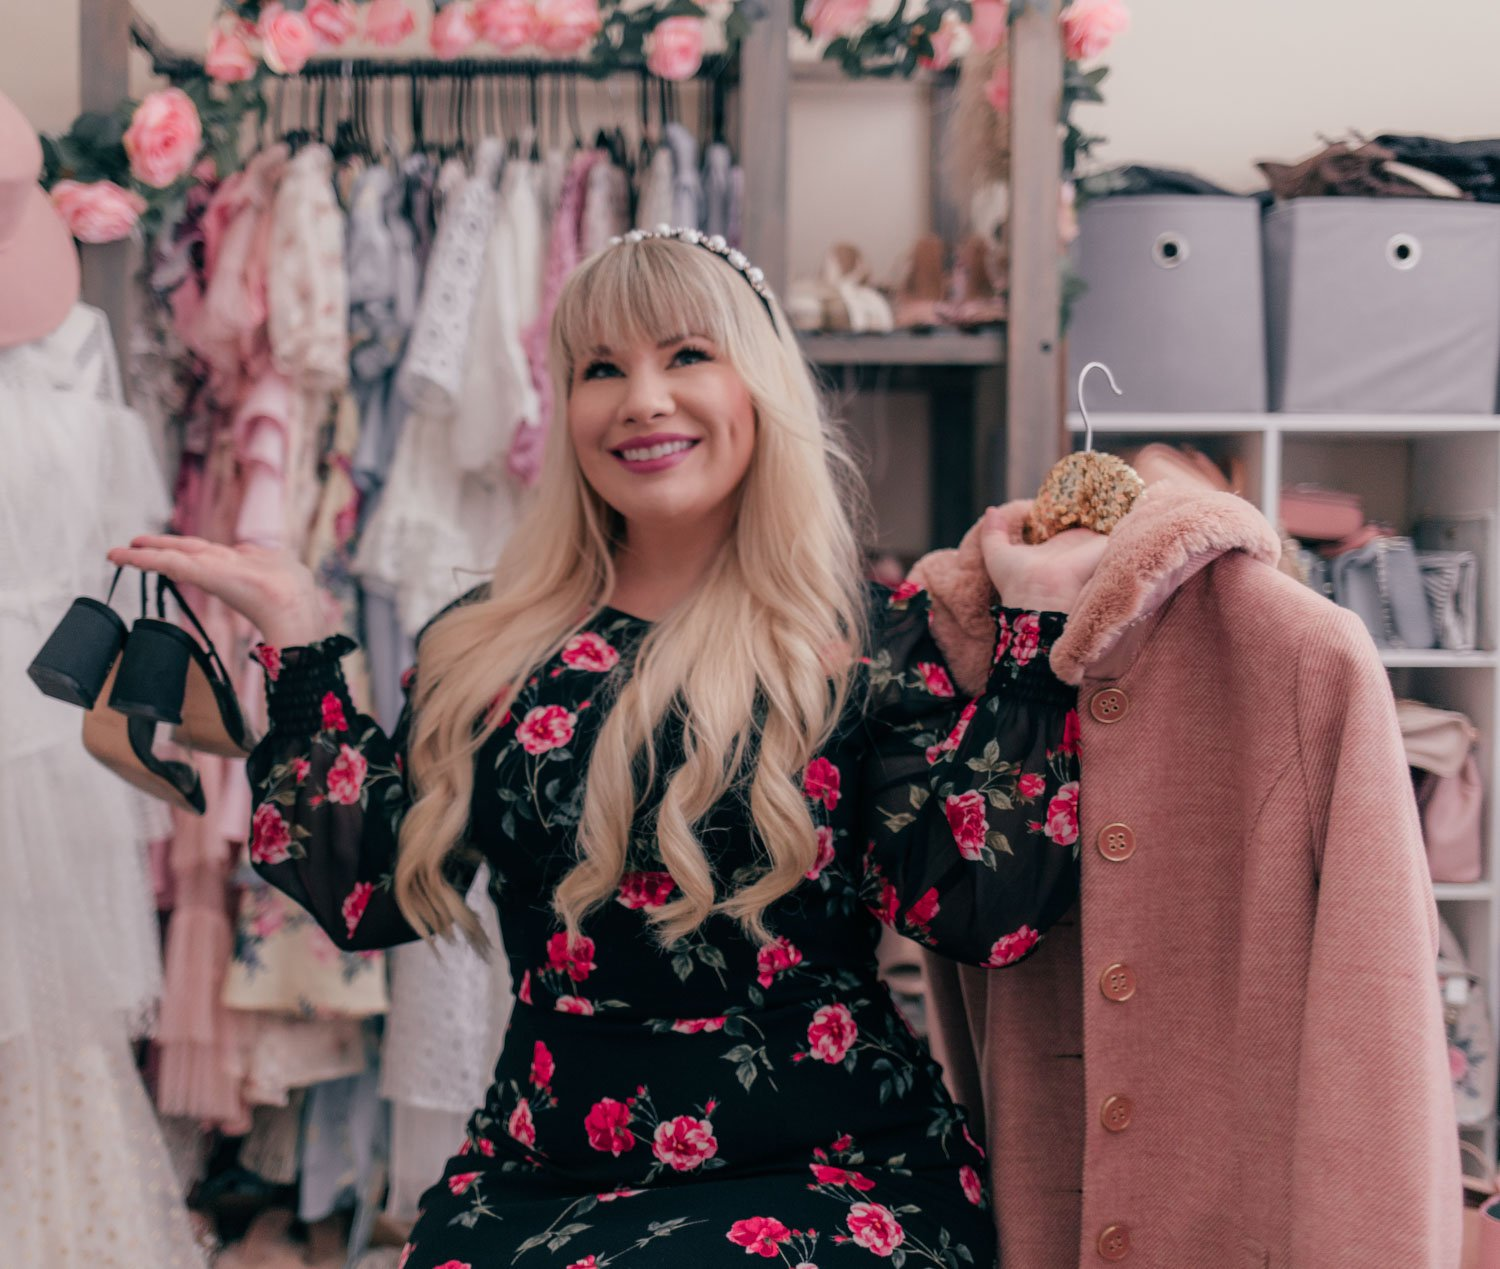 Fashion Blogger Elizabeth Hugen of Lizzie in Lace styles a black floral dress and shares her feminine pink closet